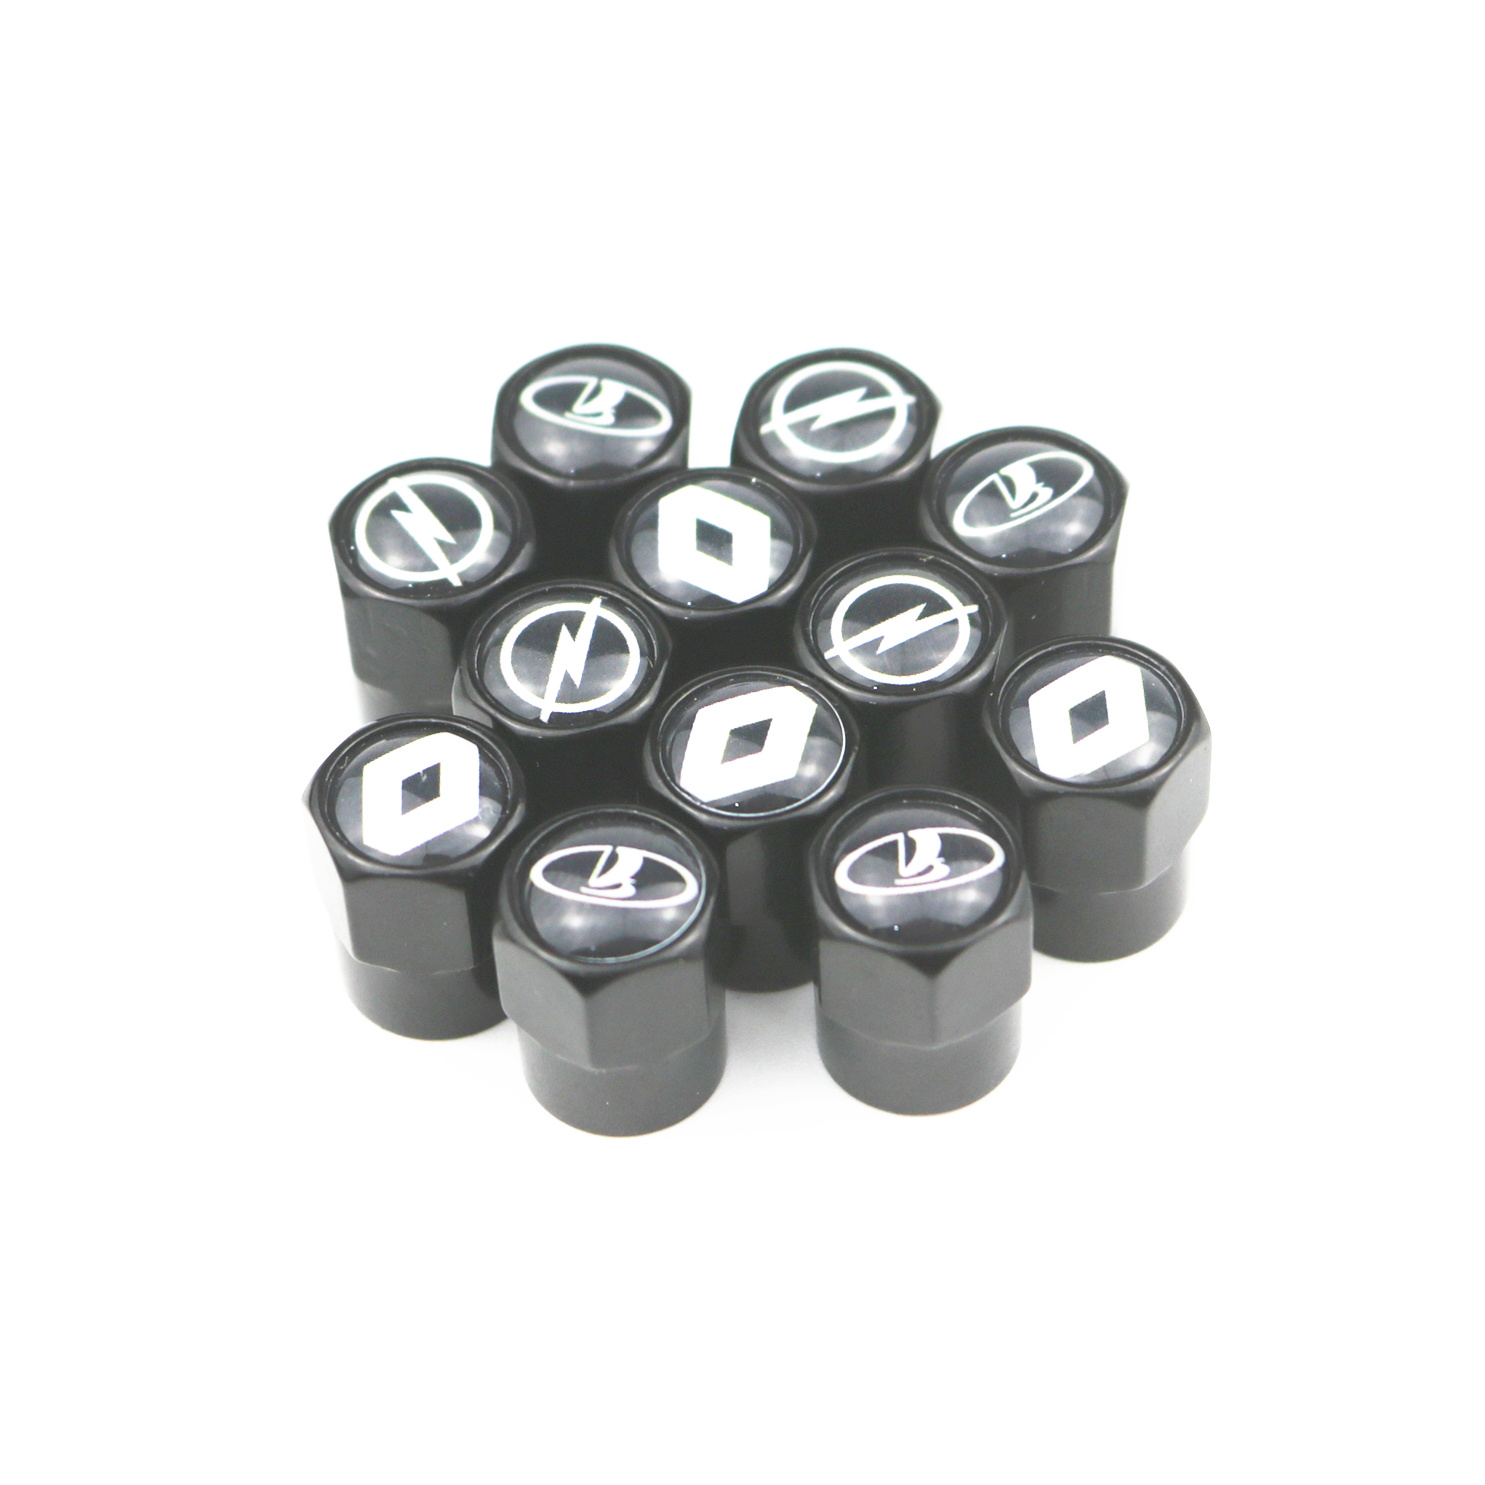 800pcs Car Metal Wheel Tire Valve Caps Stem Case For Renault Toyota Mazda Ford Opel Opel Chevrolet Audi Bmw Car Accessories